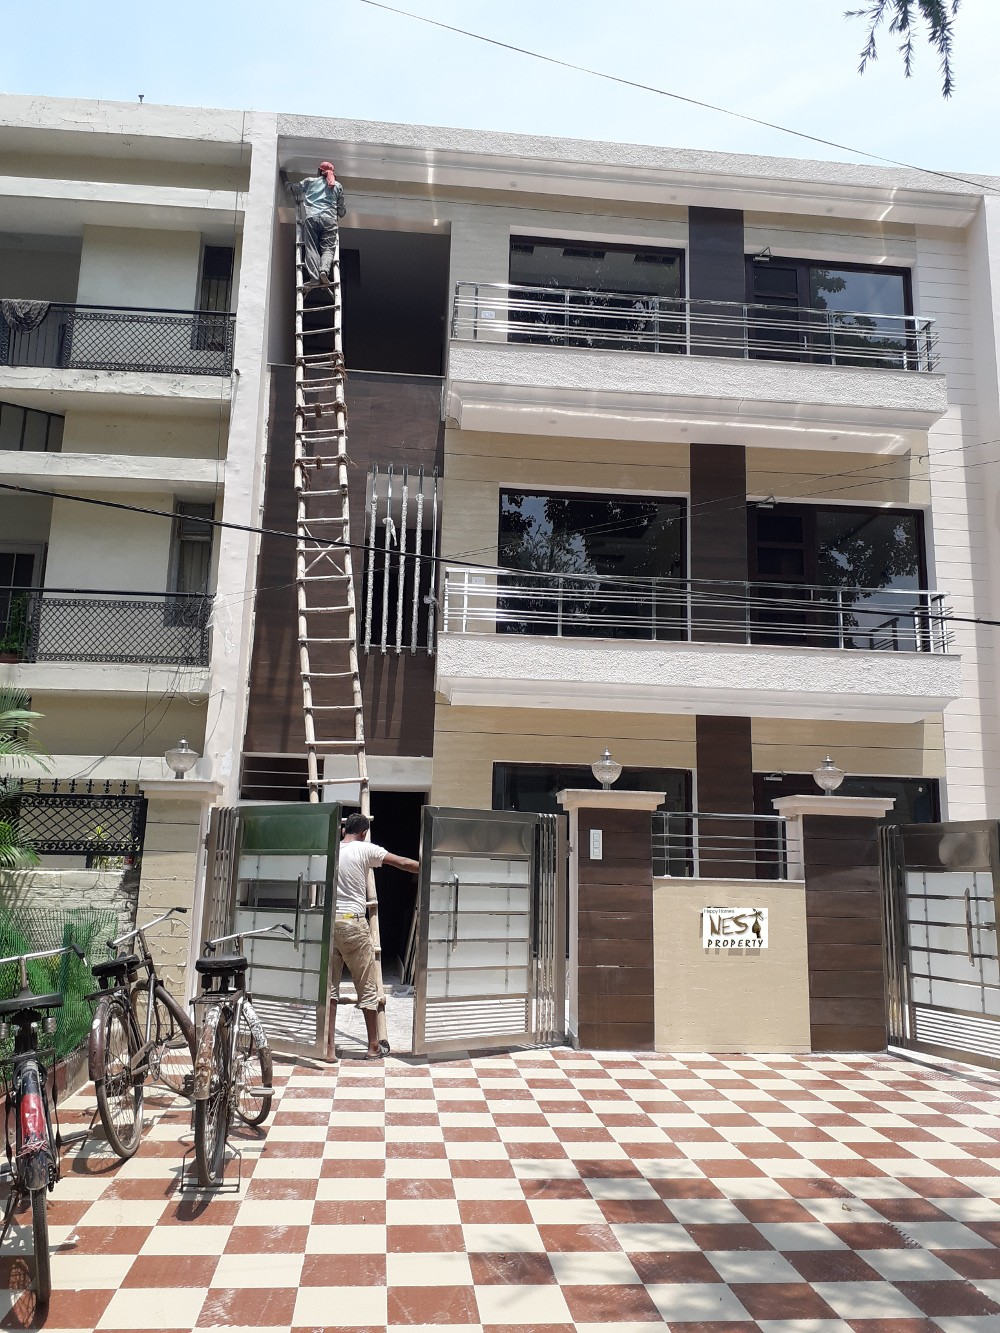 10 Marla Independent Floor for Sale at Sector 35 In Chandigarh Call-9888777712